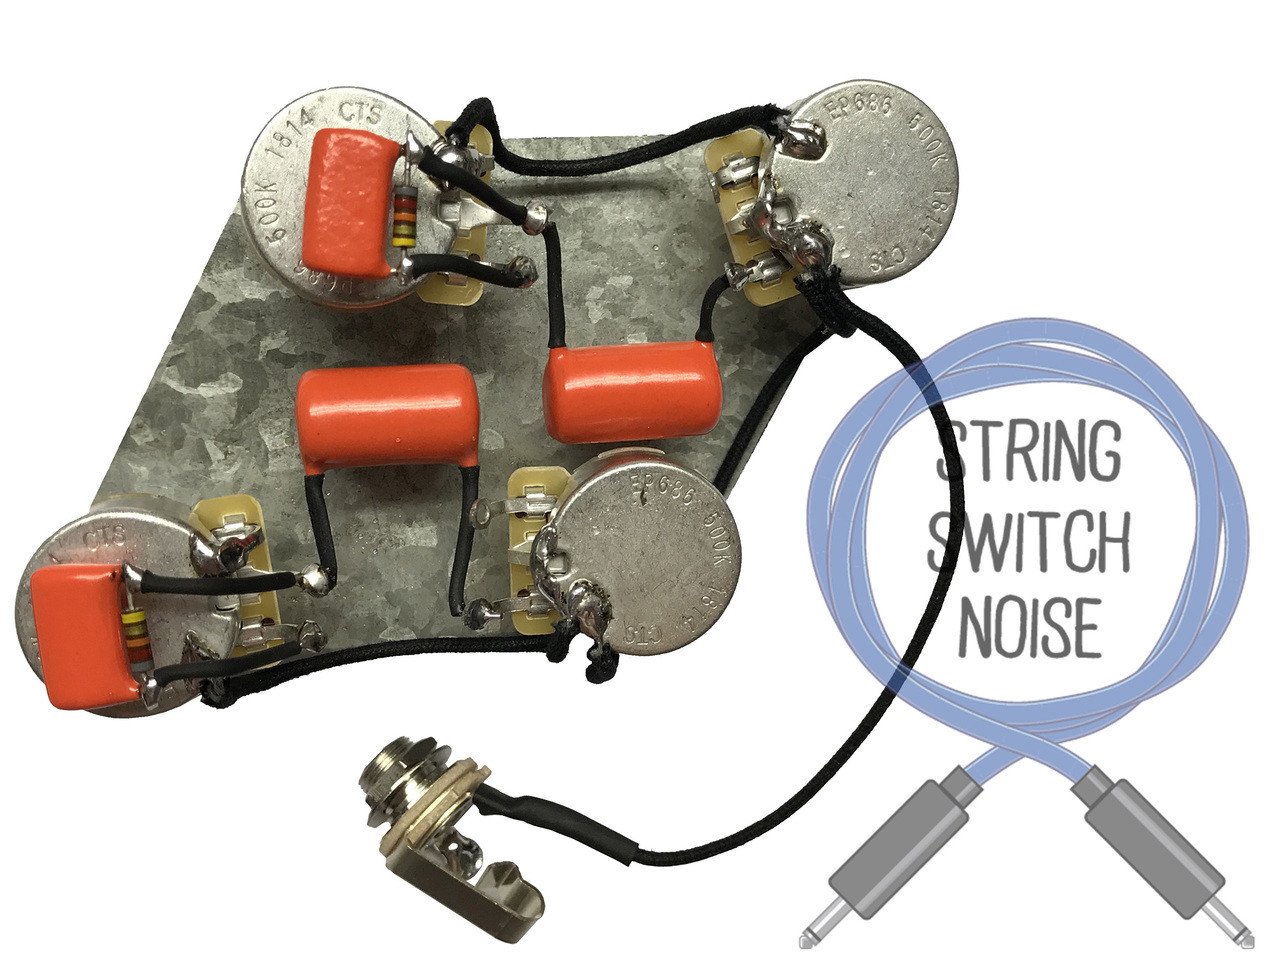 hight resolution of gibson les paul long shaft pots wiring harness treble bleed wiring gibson les paul wiring guitar treble bleed wiring gibson les